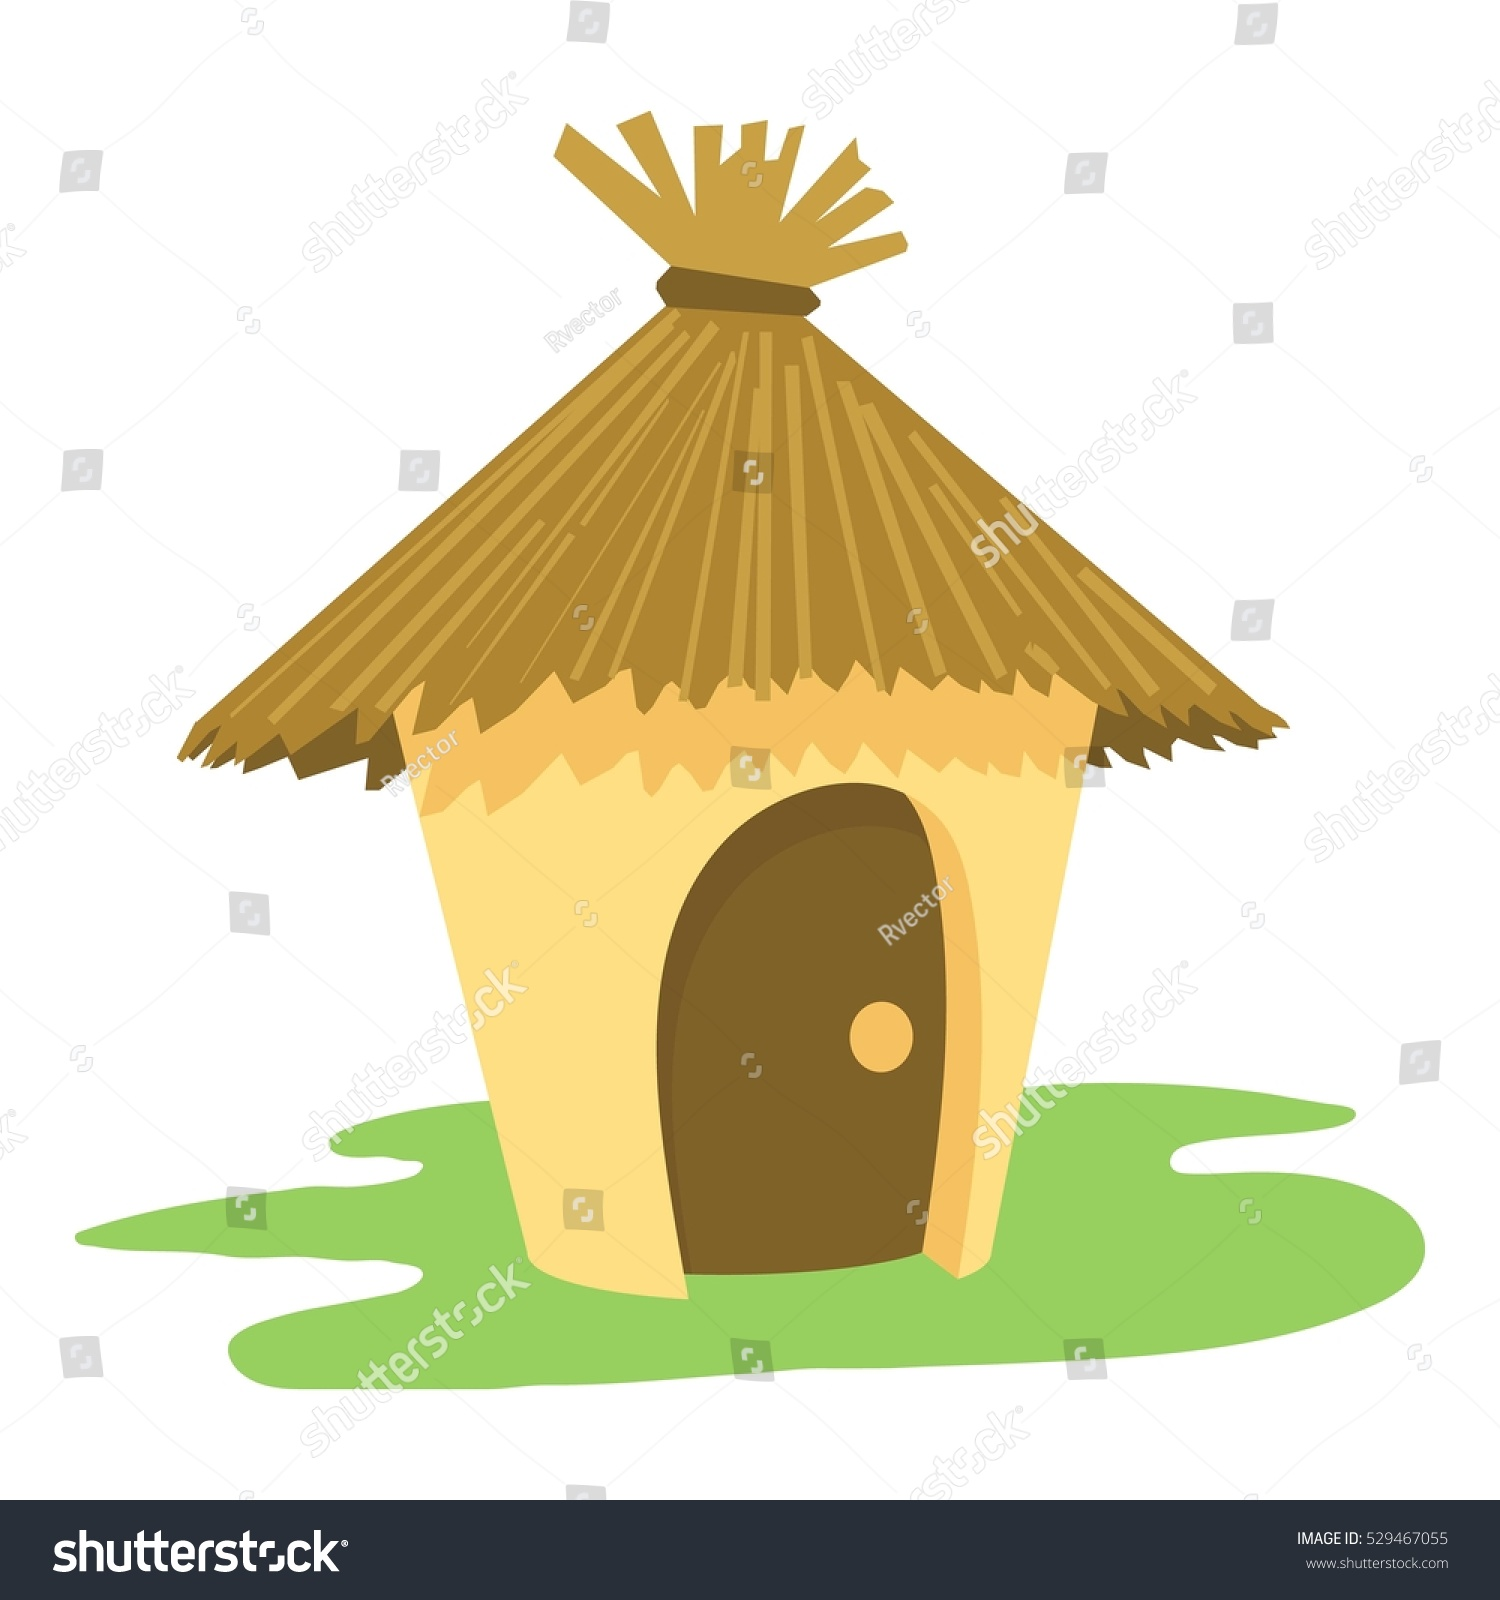 Hut House Logo: Village Tiki Hut Icon Cartoon Illustration Stock Vector